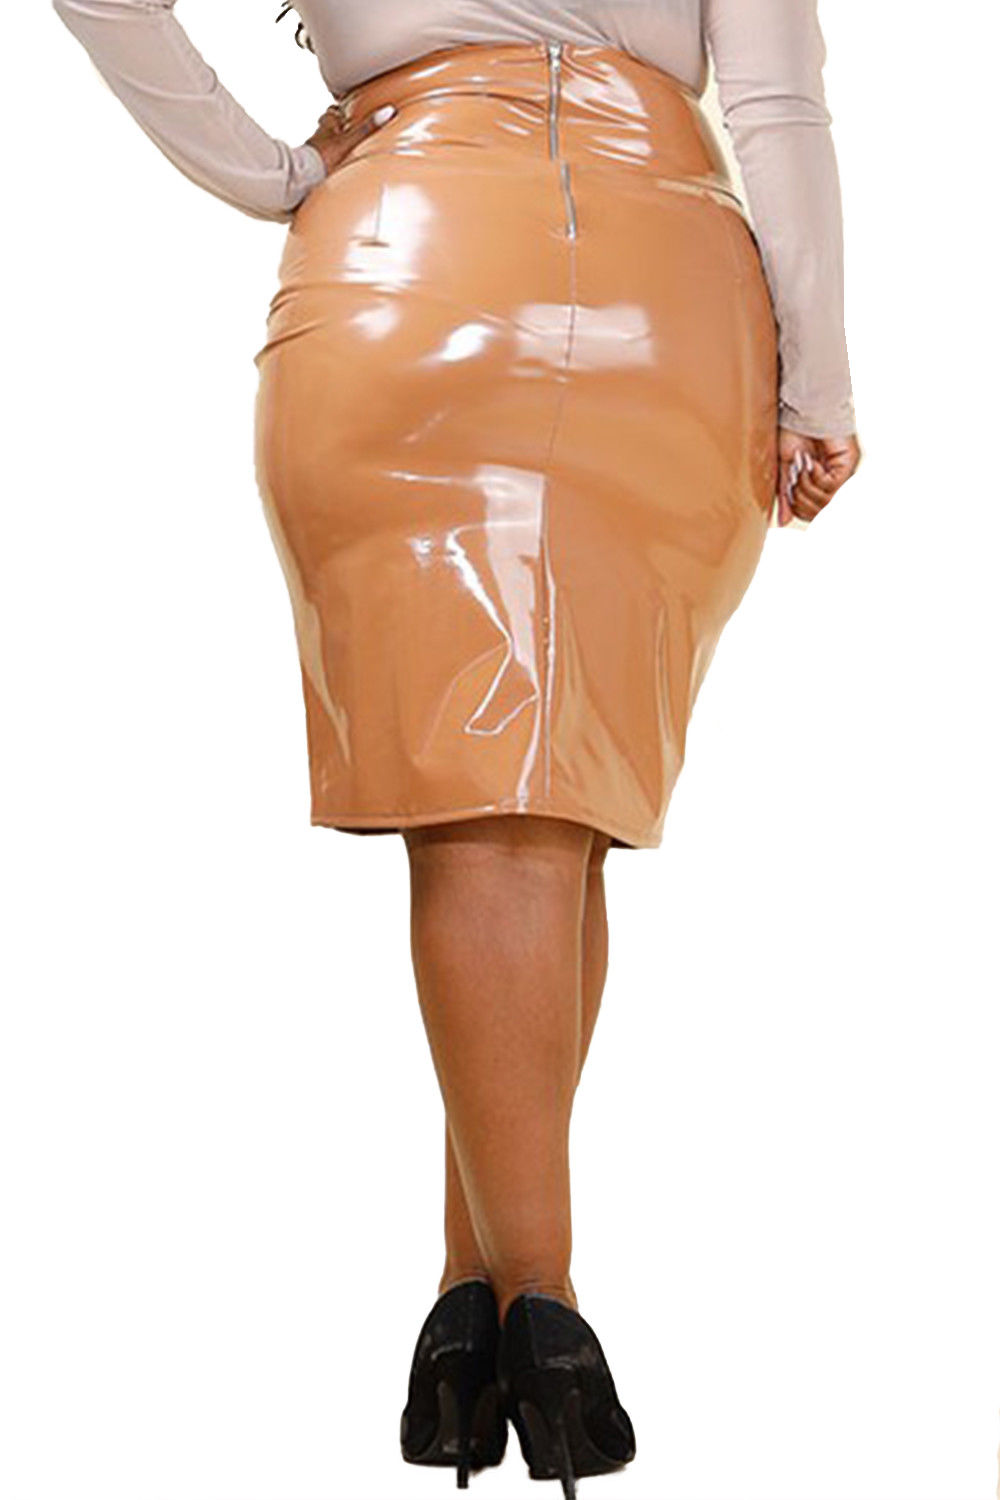 d845954e4 Genx - Womens Plus Size Shiny Latex Midi Fashion PU Skirt GNS4213 -XL-Nude  - Walmart.com